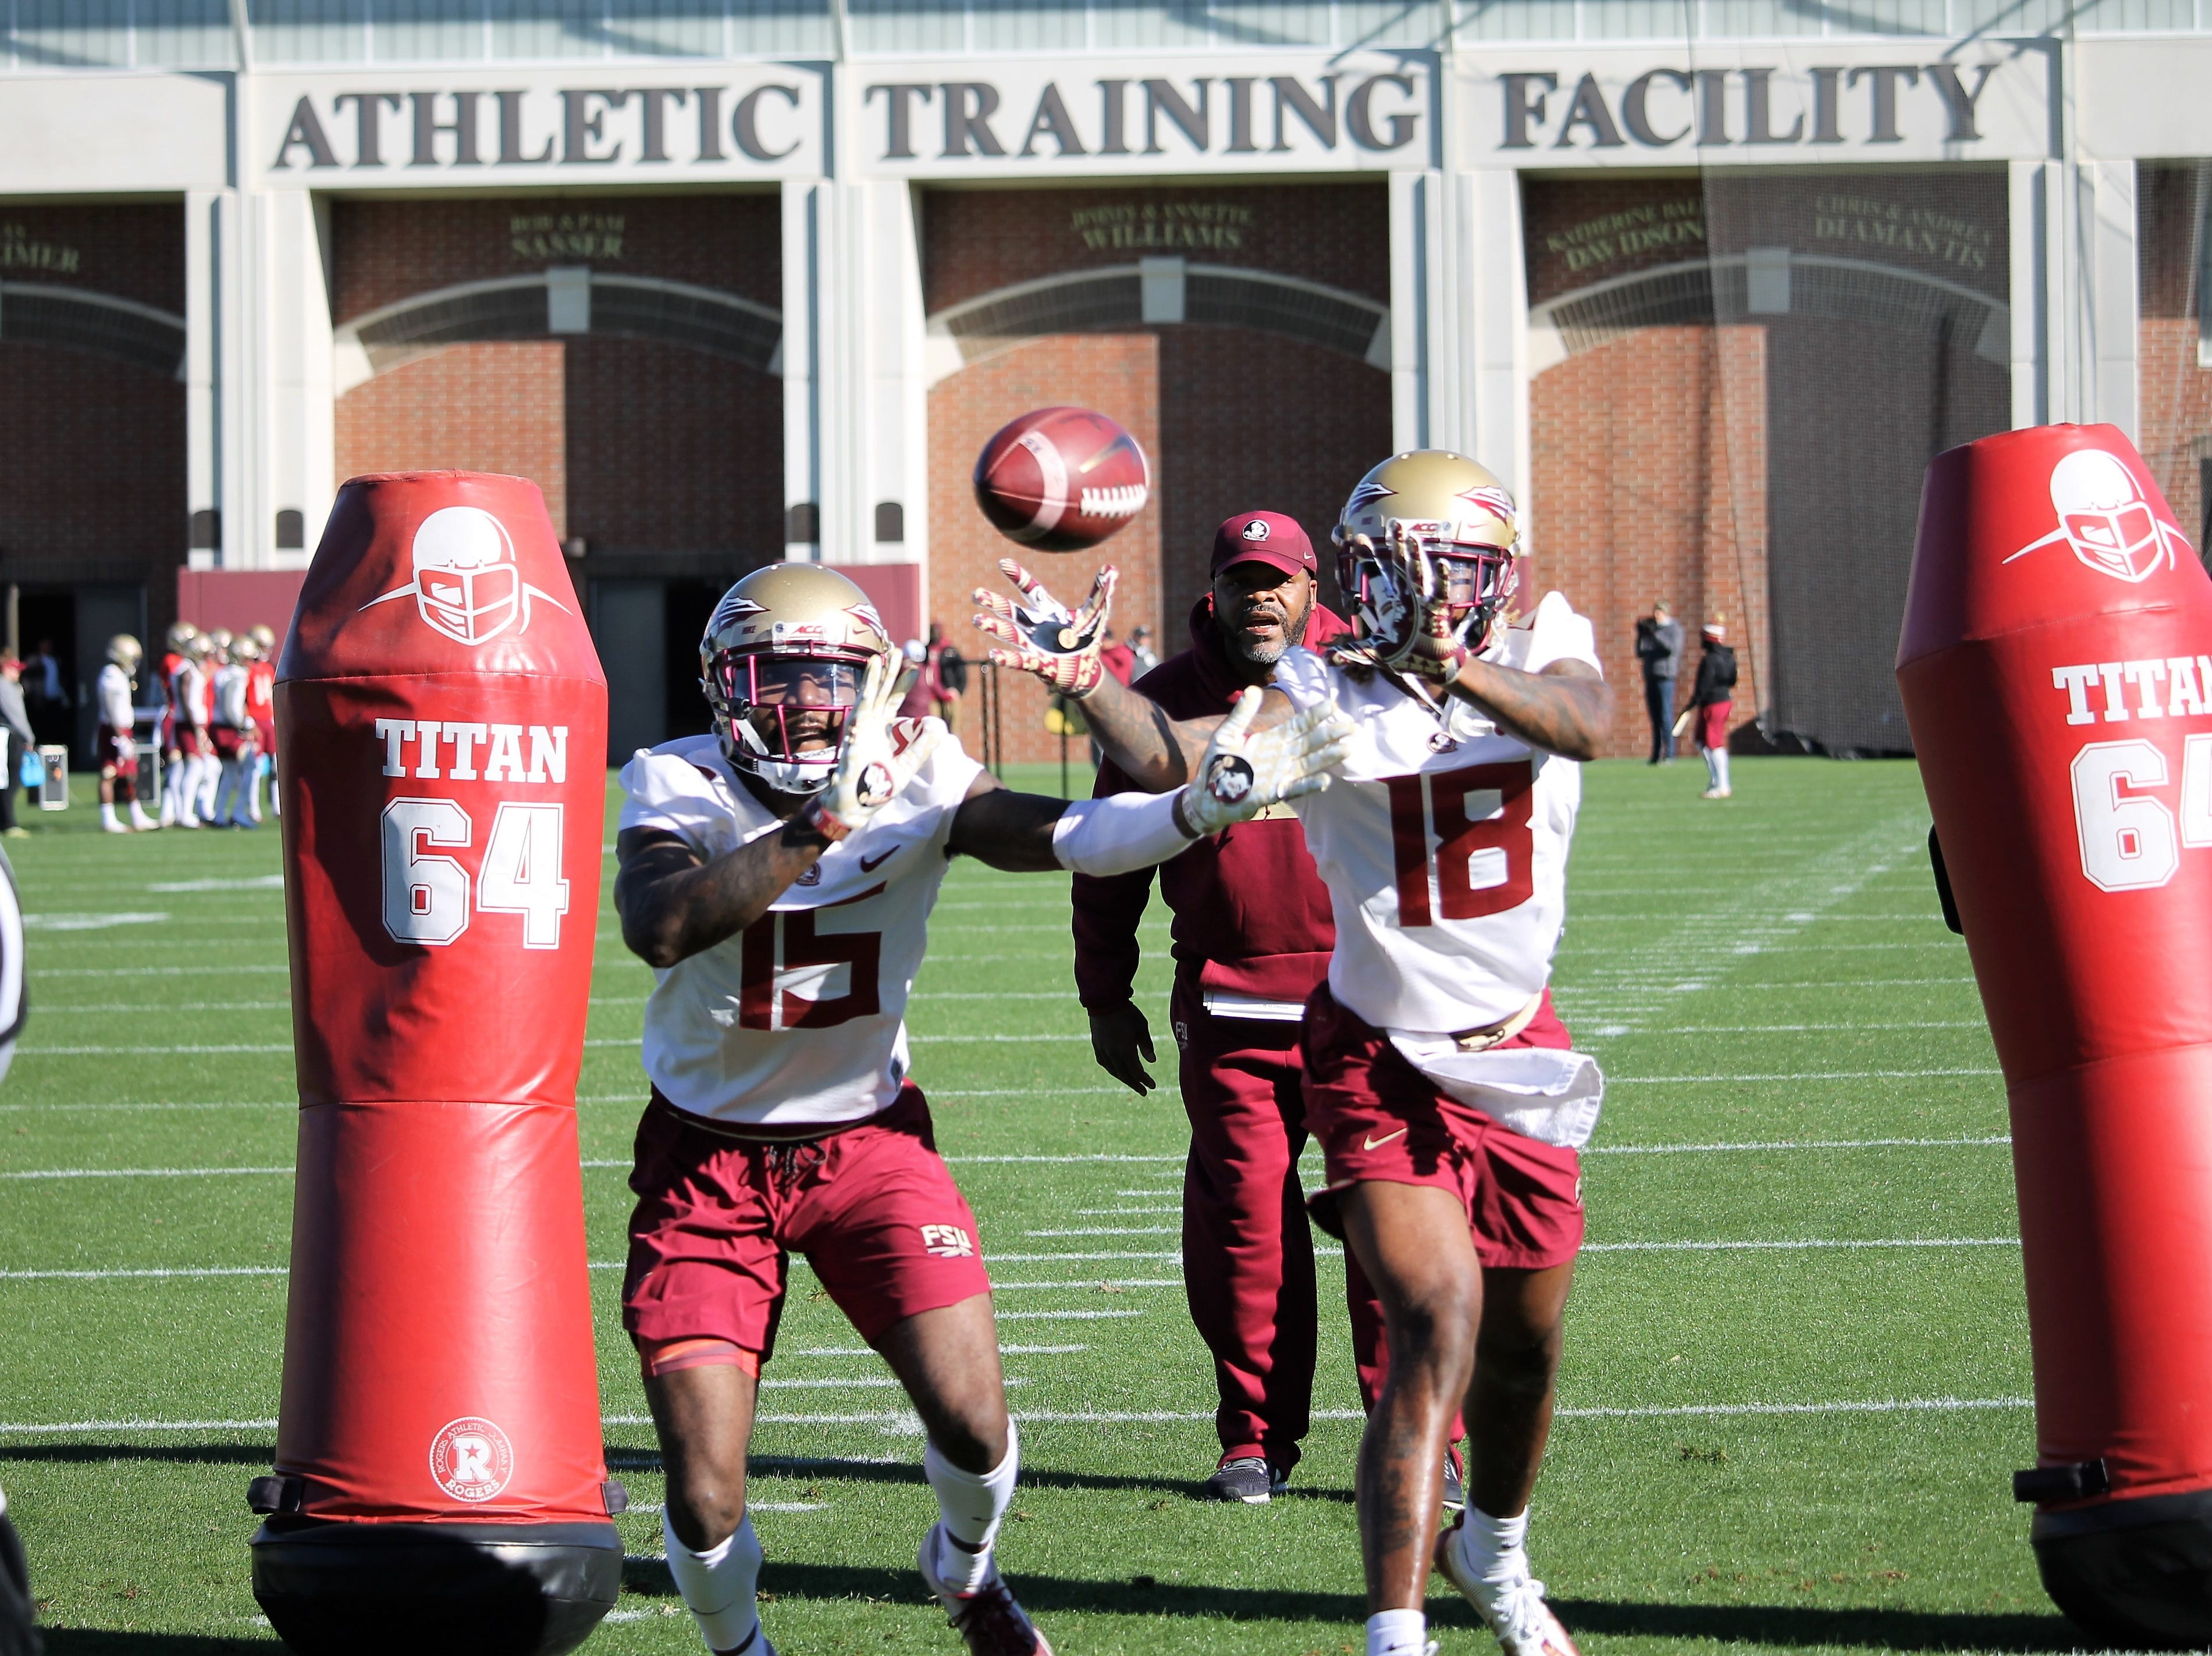 Wide receivers Tamorrion Terry (15) and Warren Thompson (18) at FSU football practice on March 6, 2019.